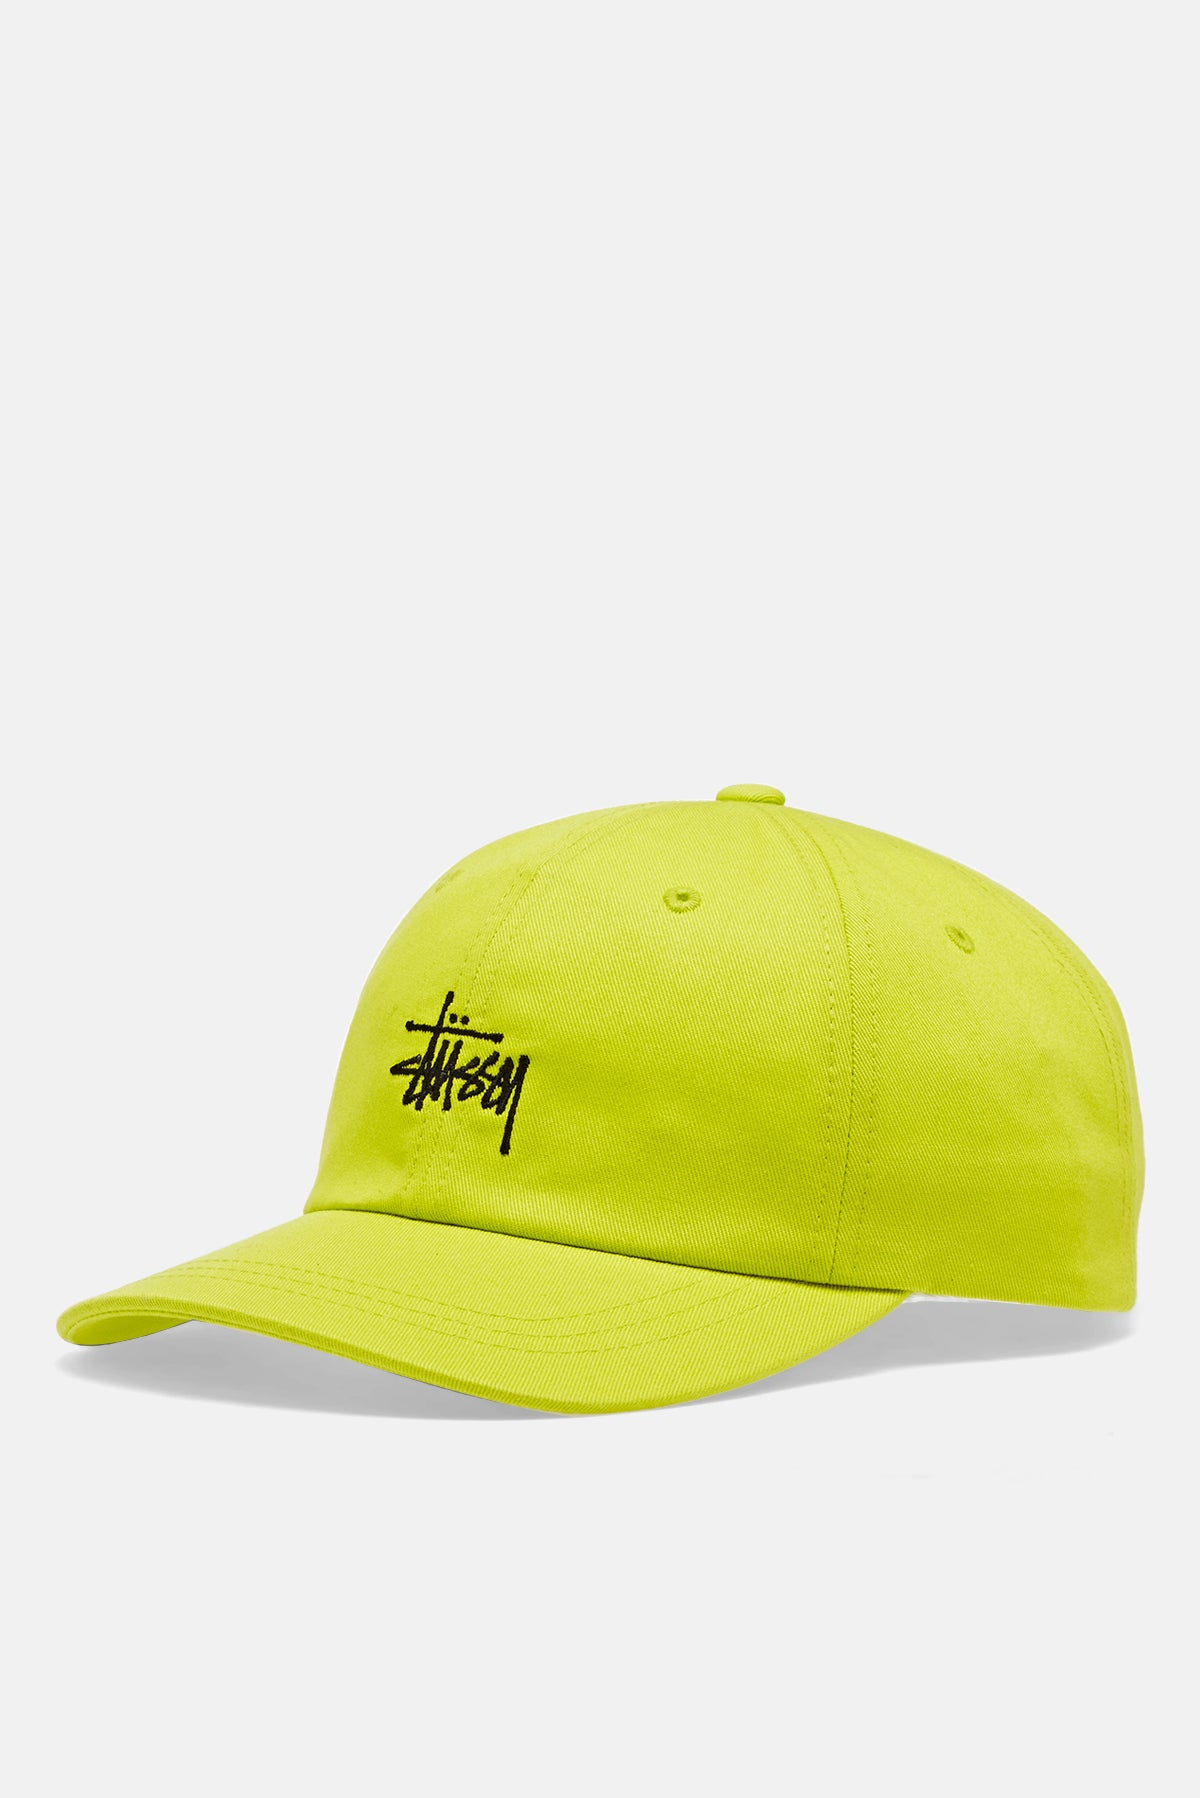 Stussy Stock Low Pro Cap available from Priory ace7cb9026c